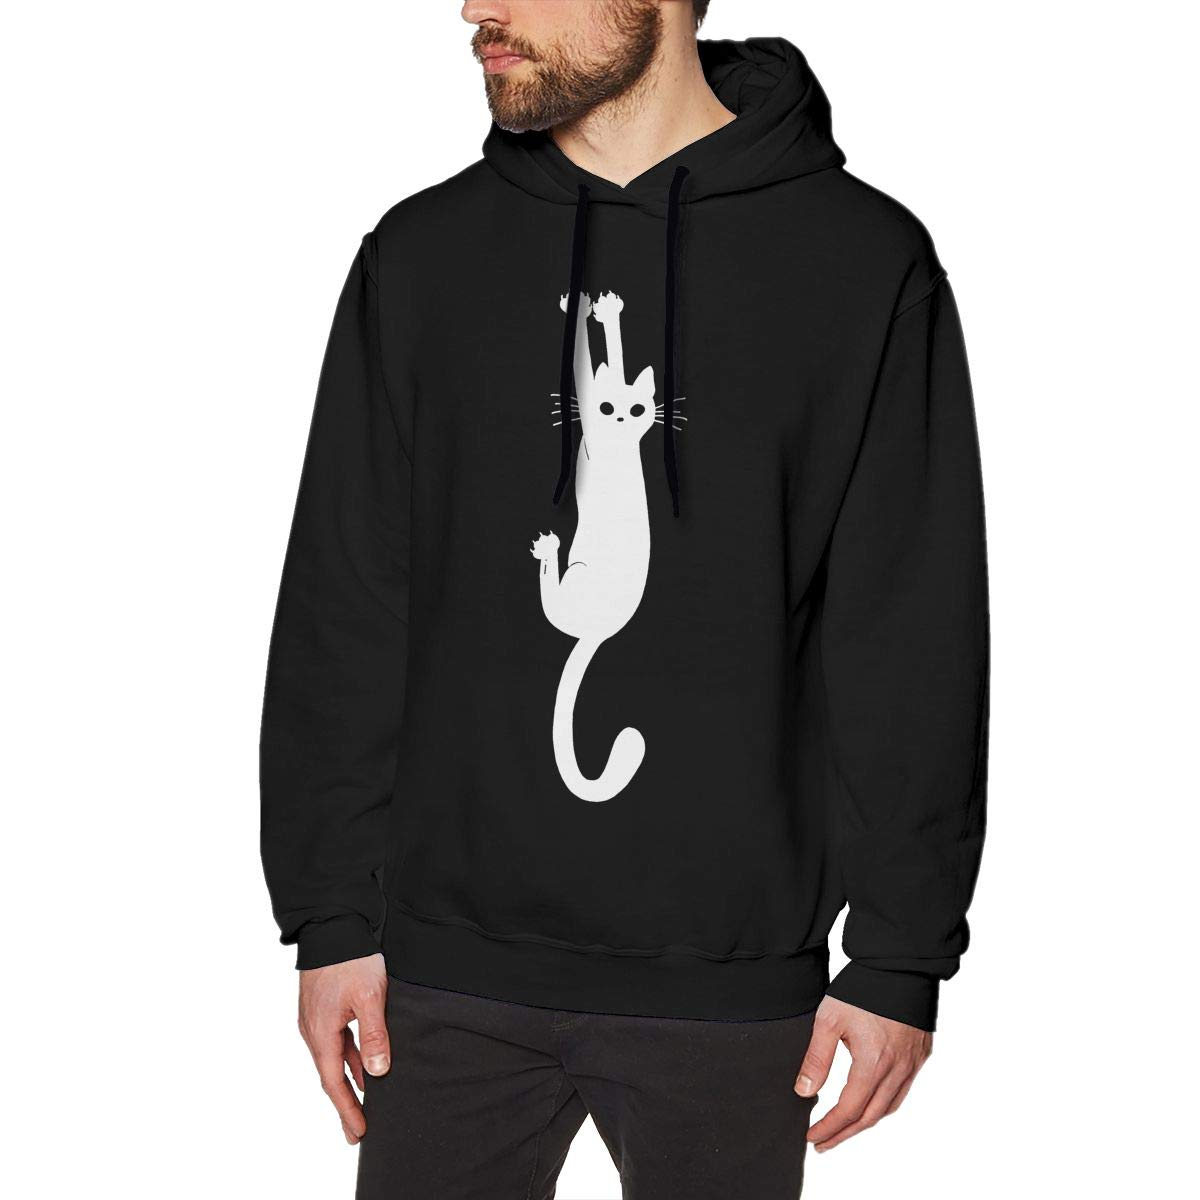 Black Cat Holding On Mens Hoodie Fashion Pullover Sweatshirt